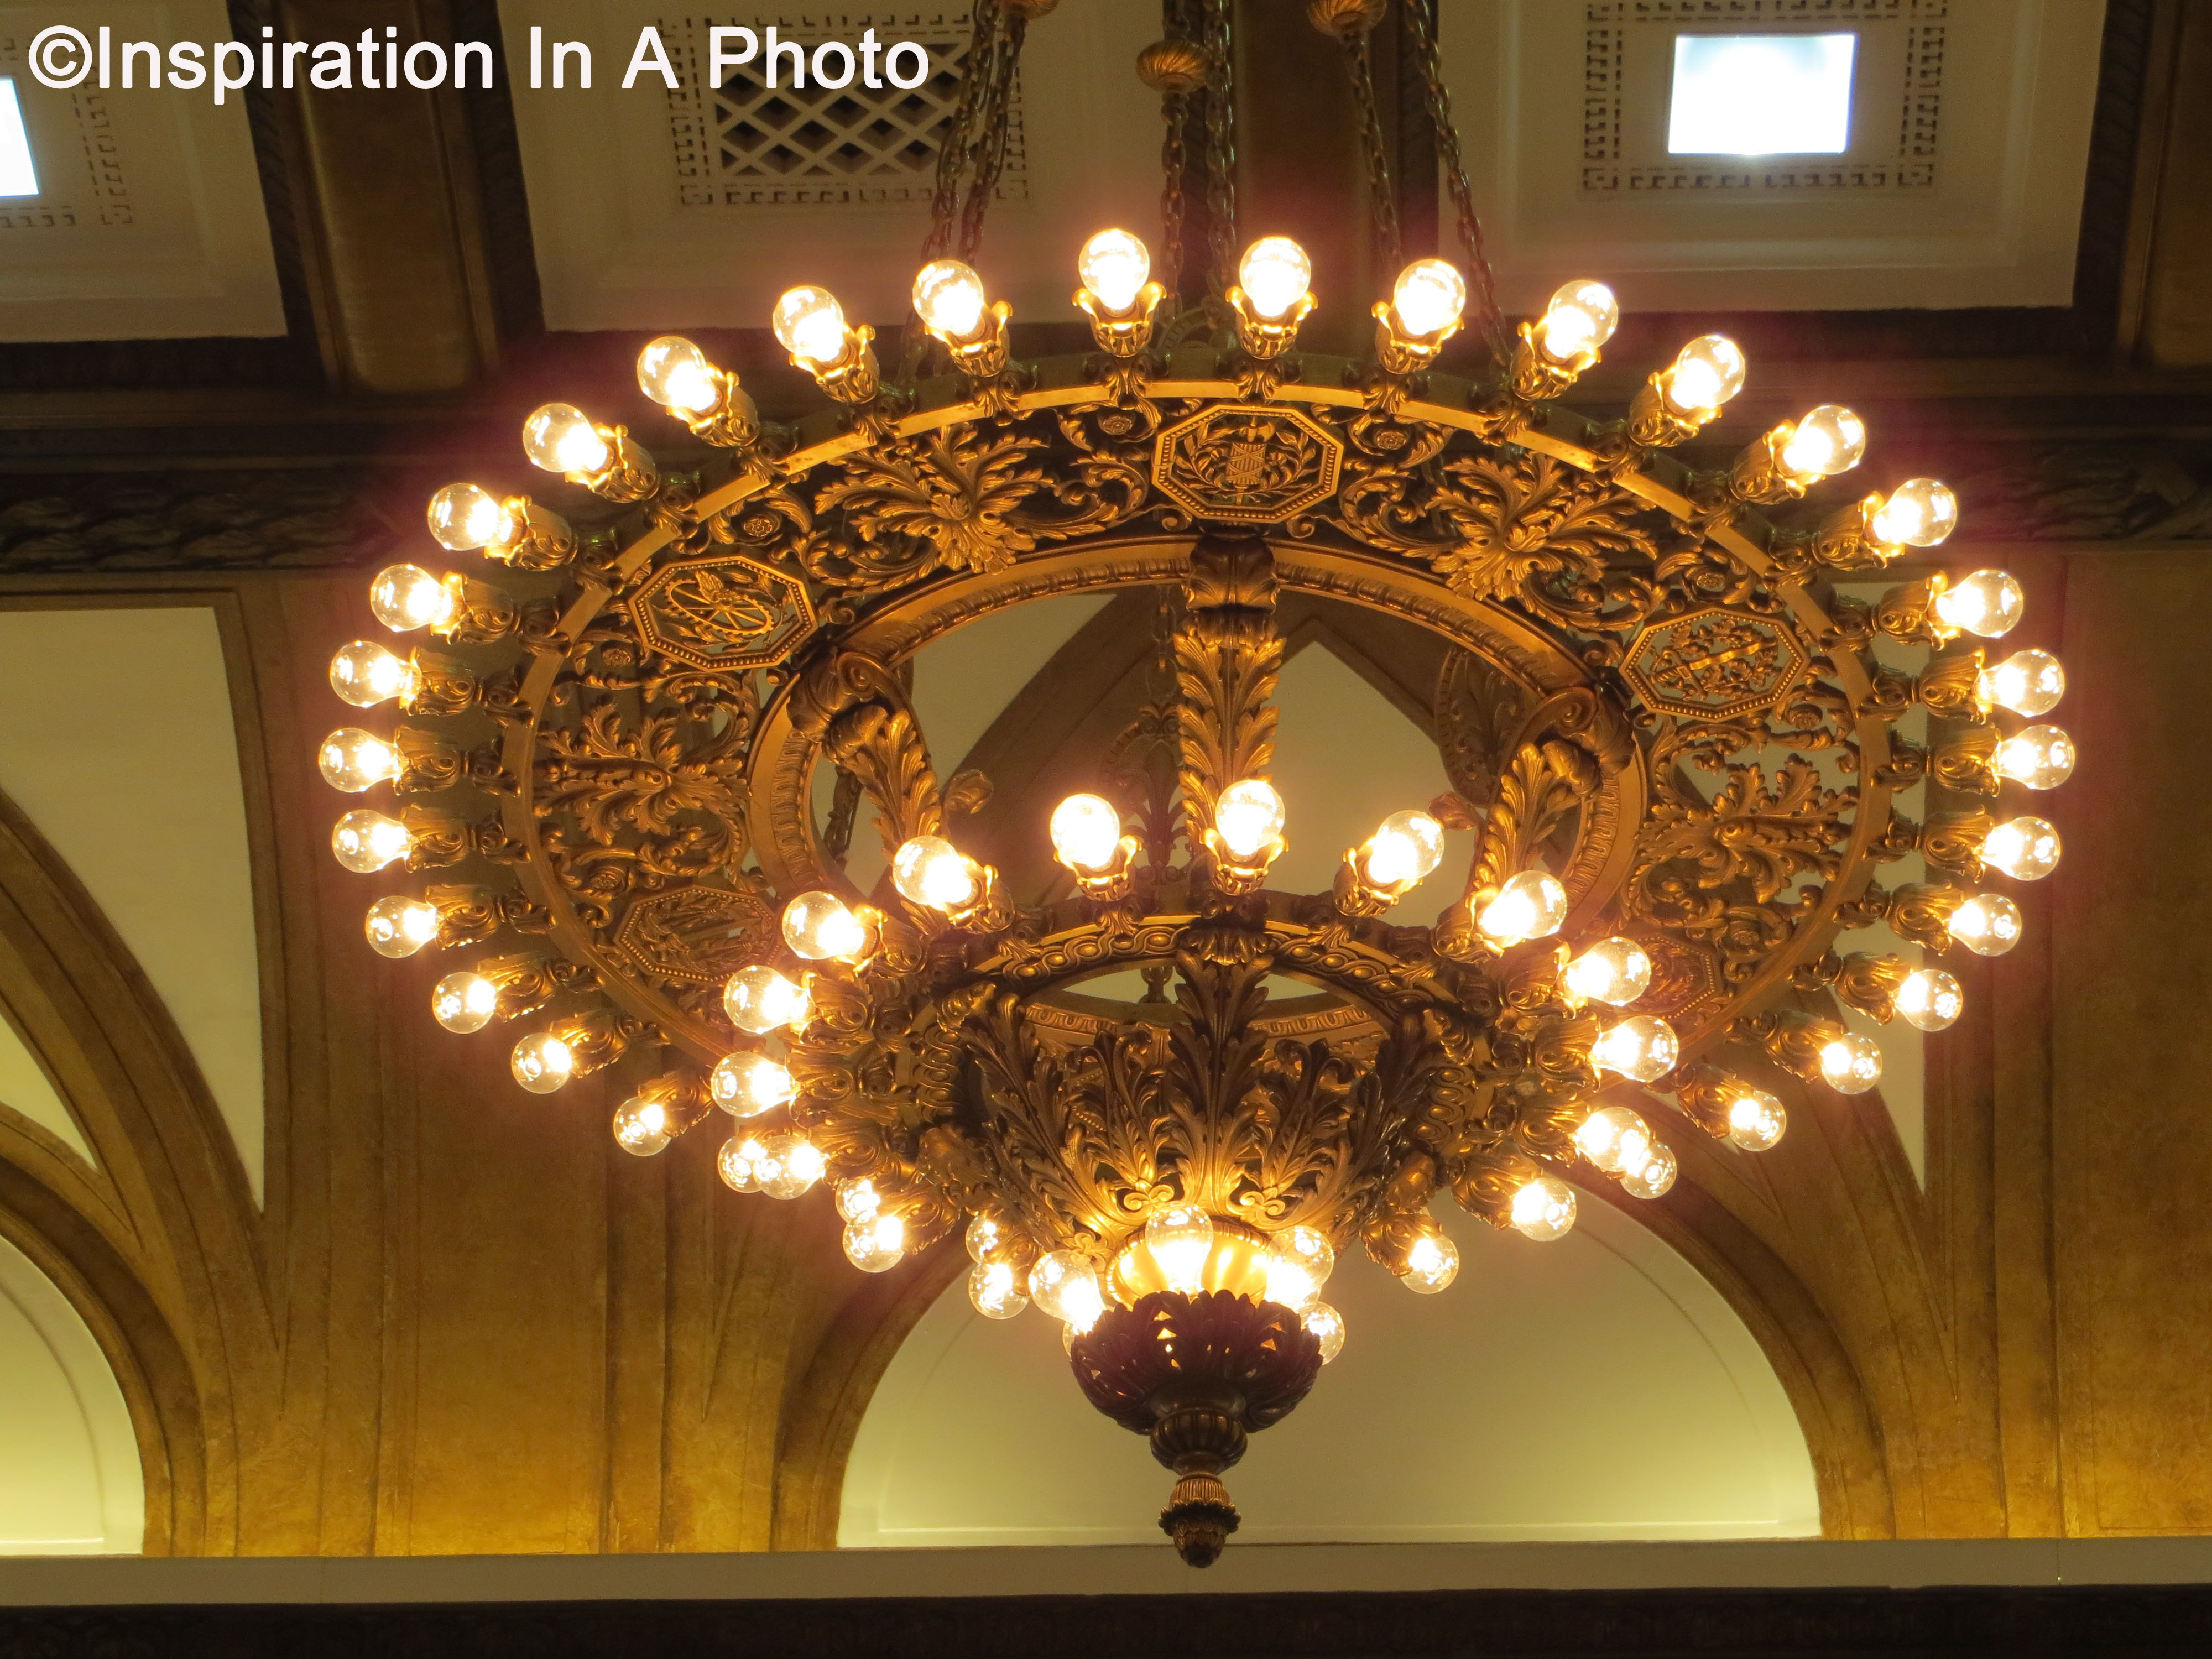 Grand chandeliers inspiration in a photo grand chandeliers aloadofball Images